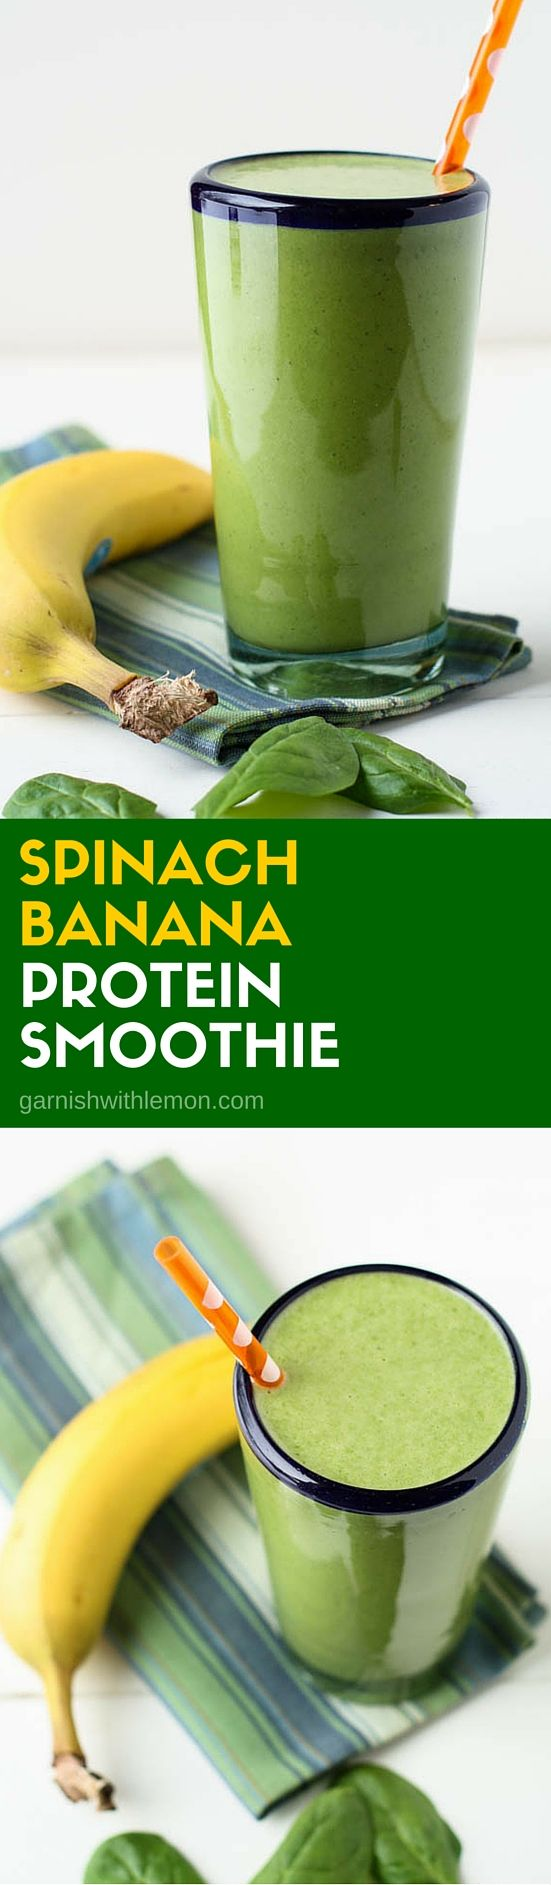 Start your day on the right foot with a healthy, filling breakfast. This Spinach Banana Protein Smoothie recipe will keep you going until lunch! | @andwhatelse